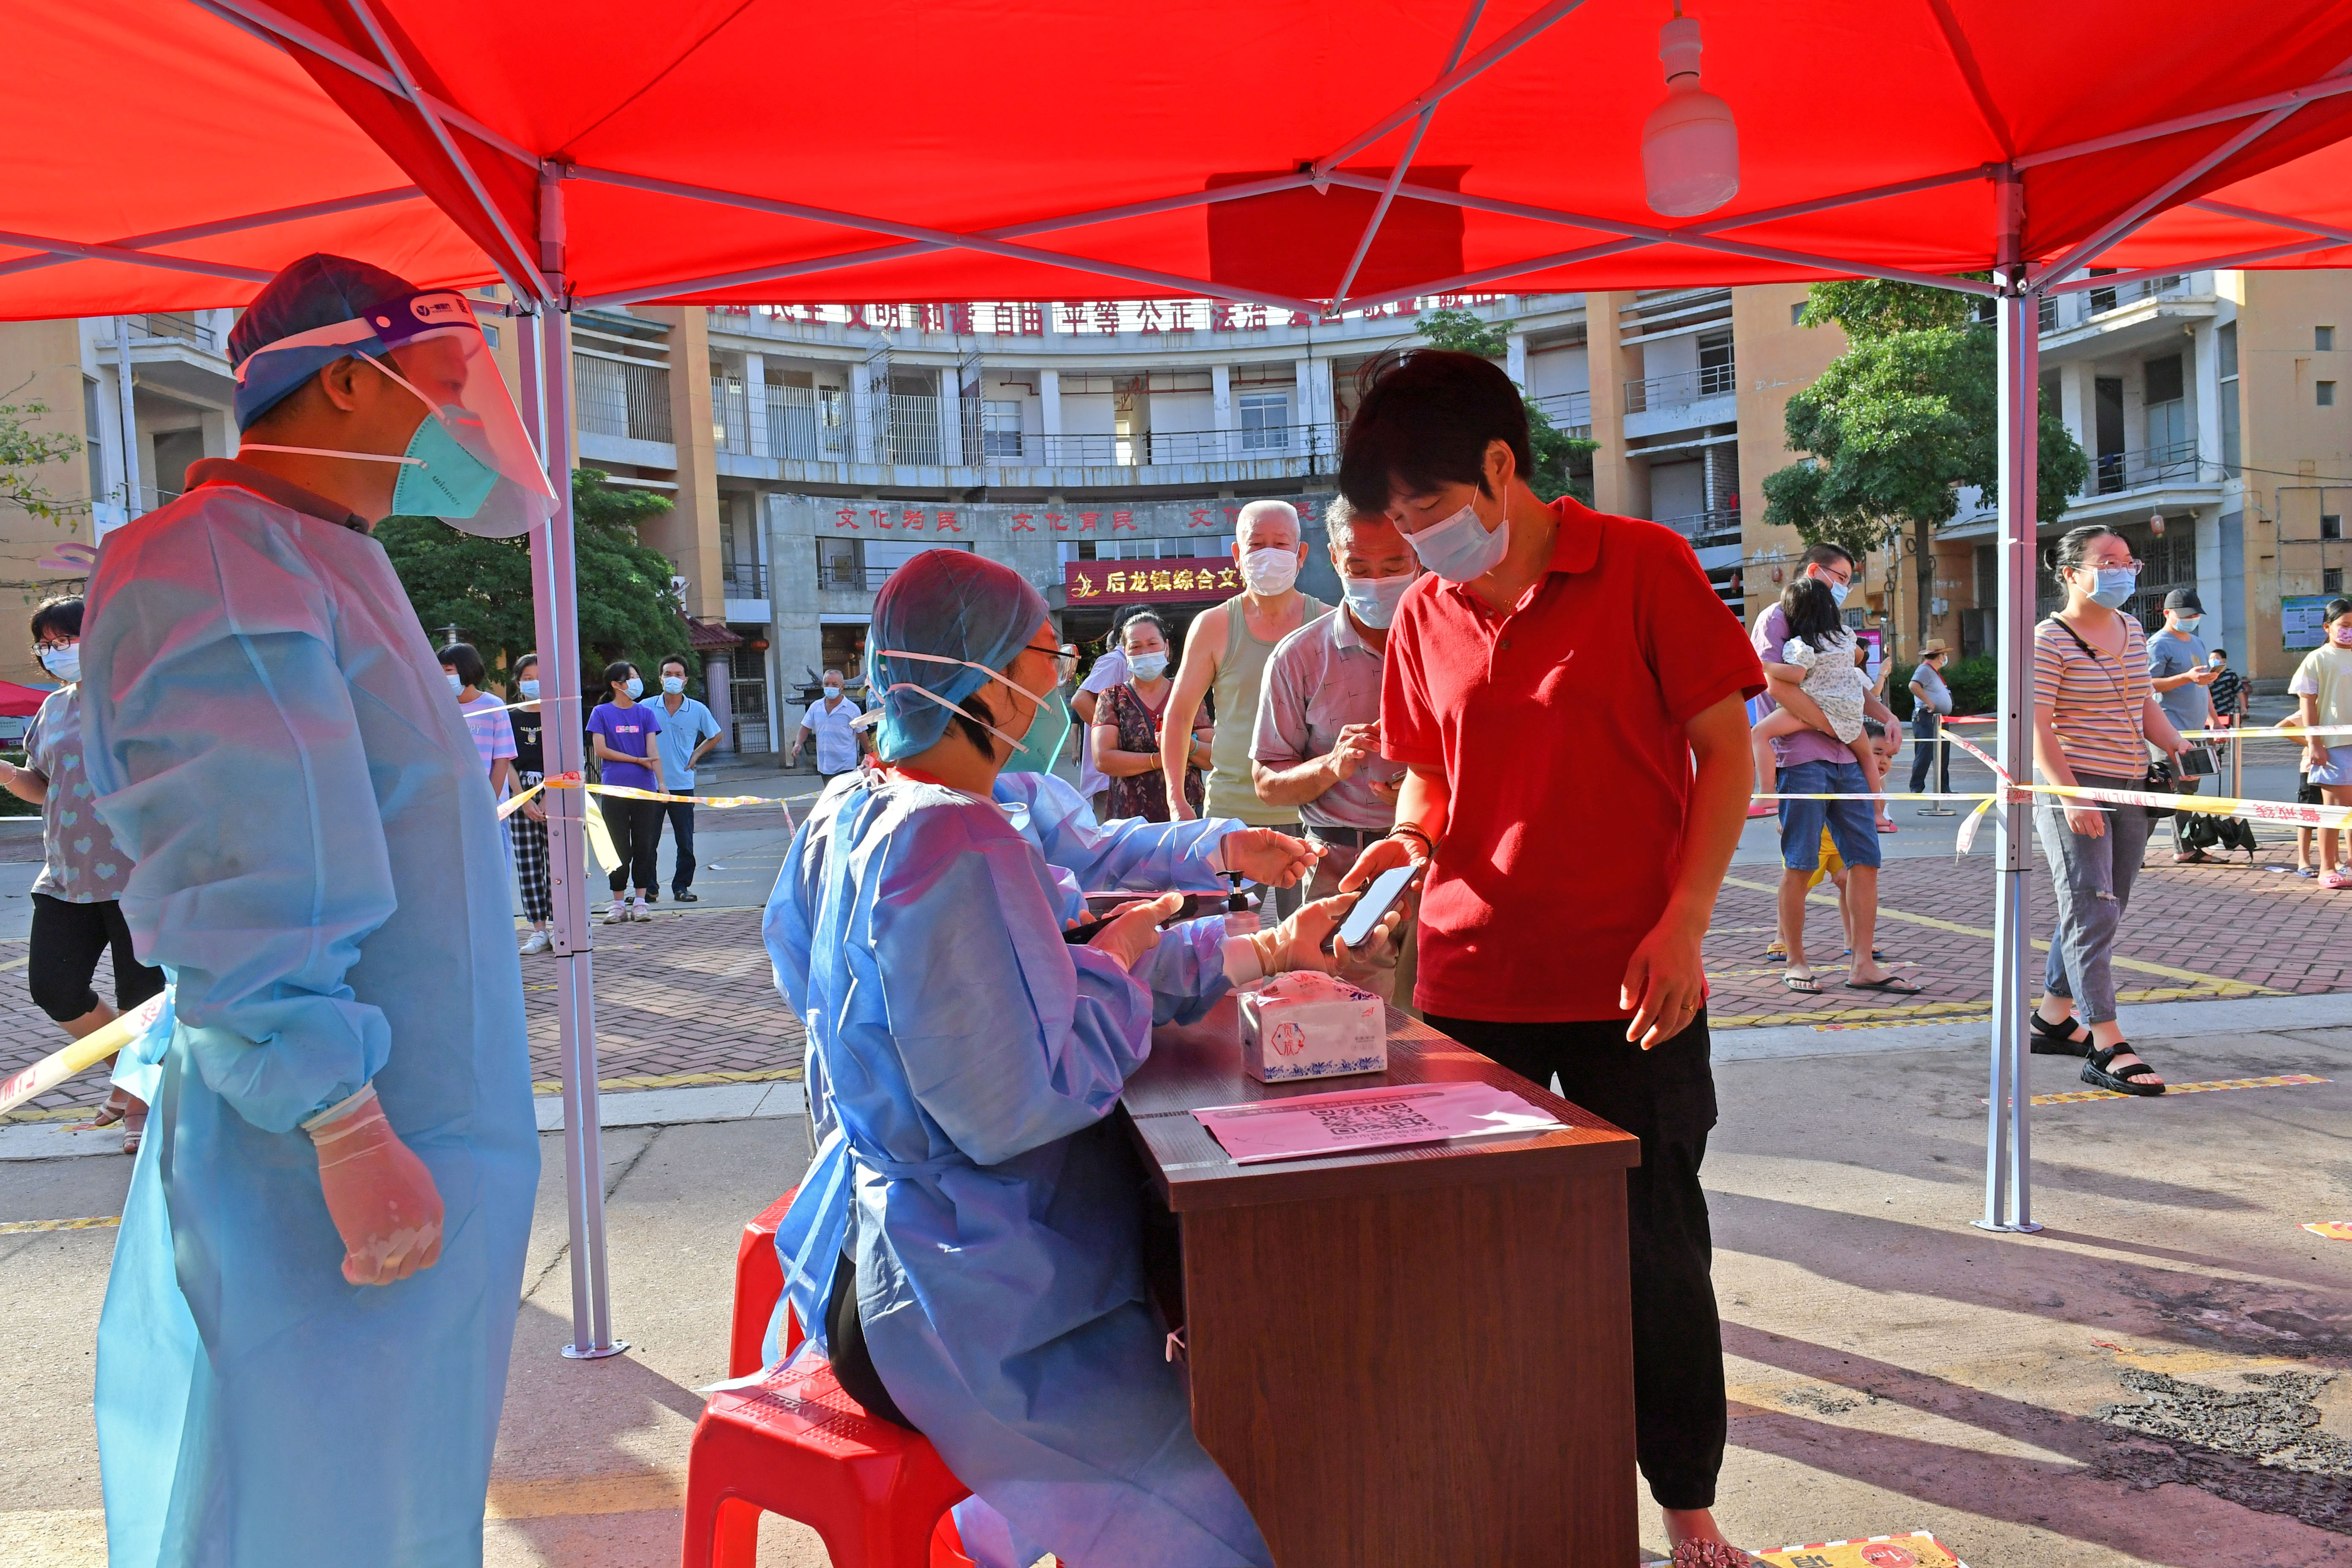 Residents register to take nucleic acid tests at a testing site in Quanzhou, following new cases of the coronavirus disease (COVID-19), in Fujian province, China September 13, 2021.  China Daily via REUTERS ATTENTION EDITORS - THIS IMAGE WAS PROVIDED BY A THIRD PARTY. CHINA OUT.